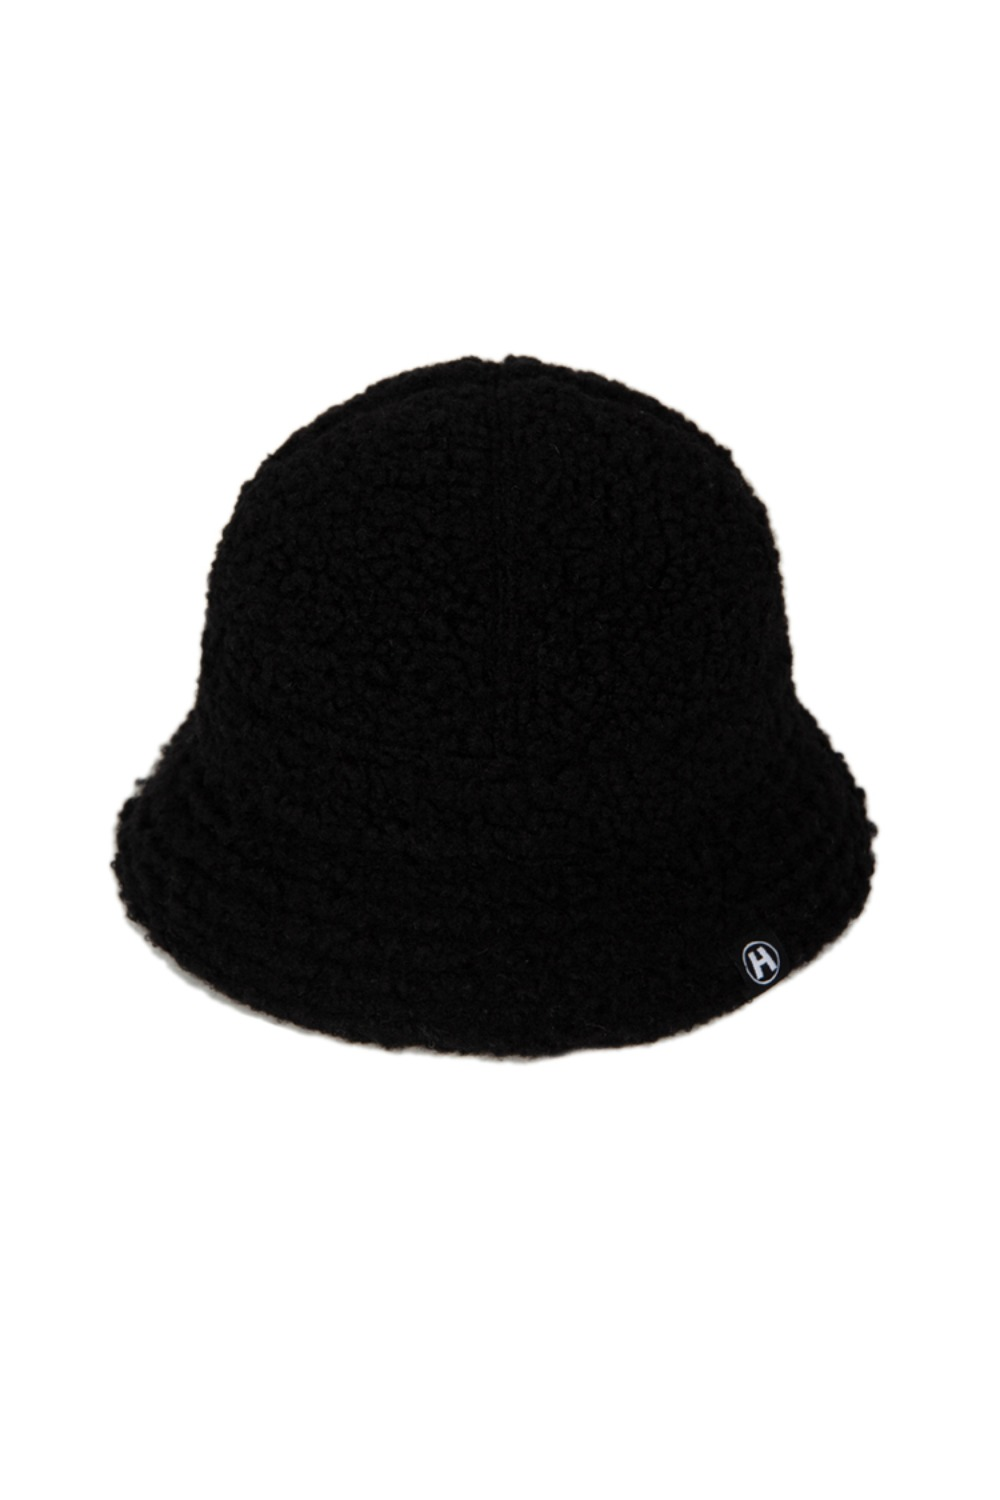 HIDE Fleece Bucket Hat BLACK